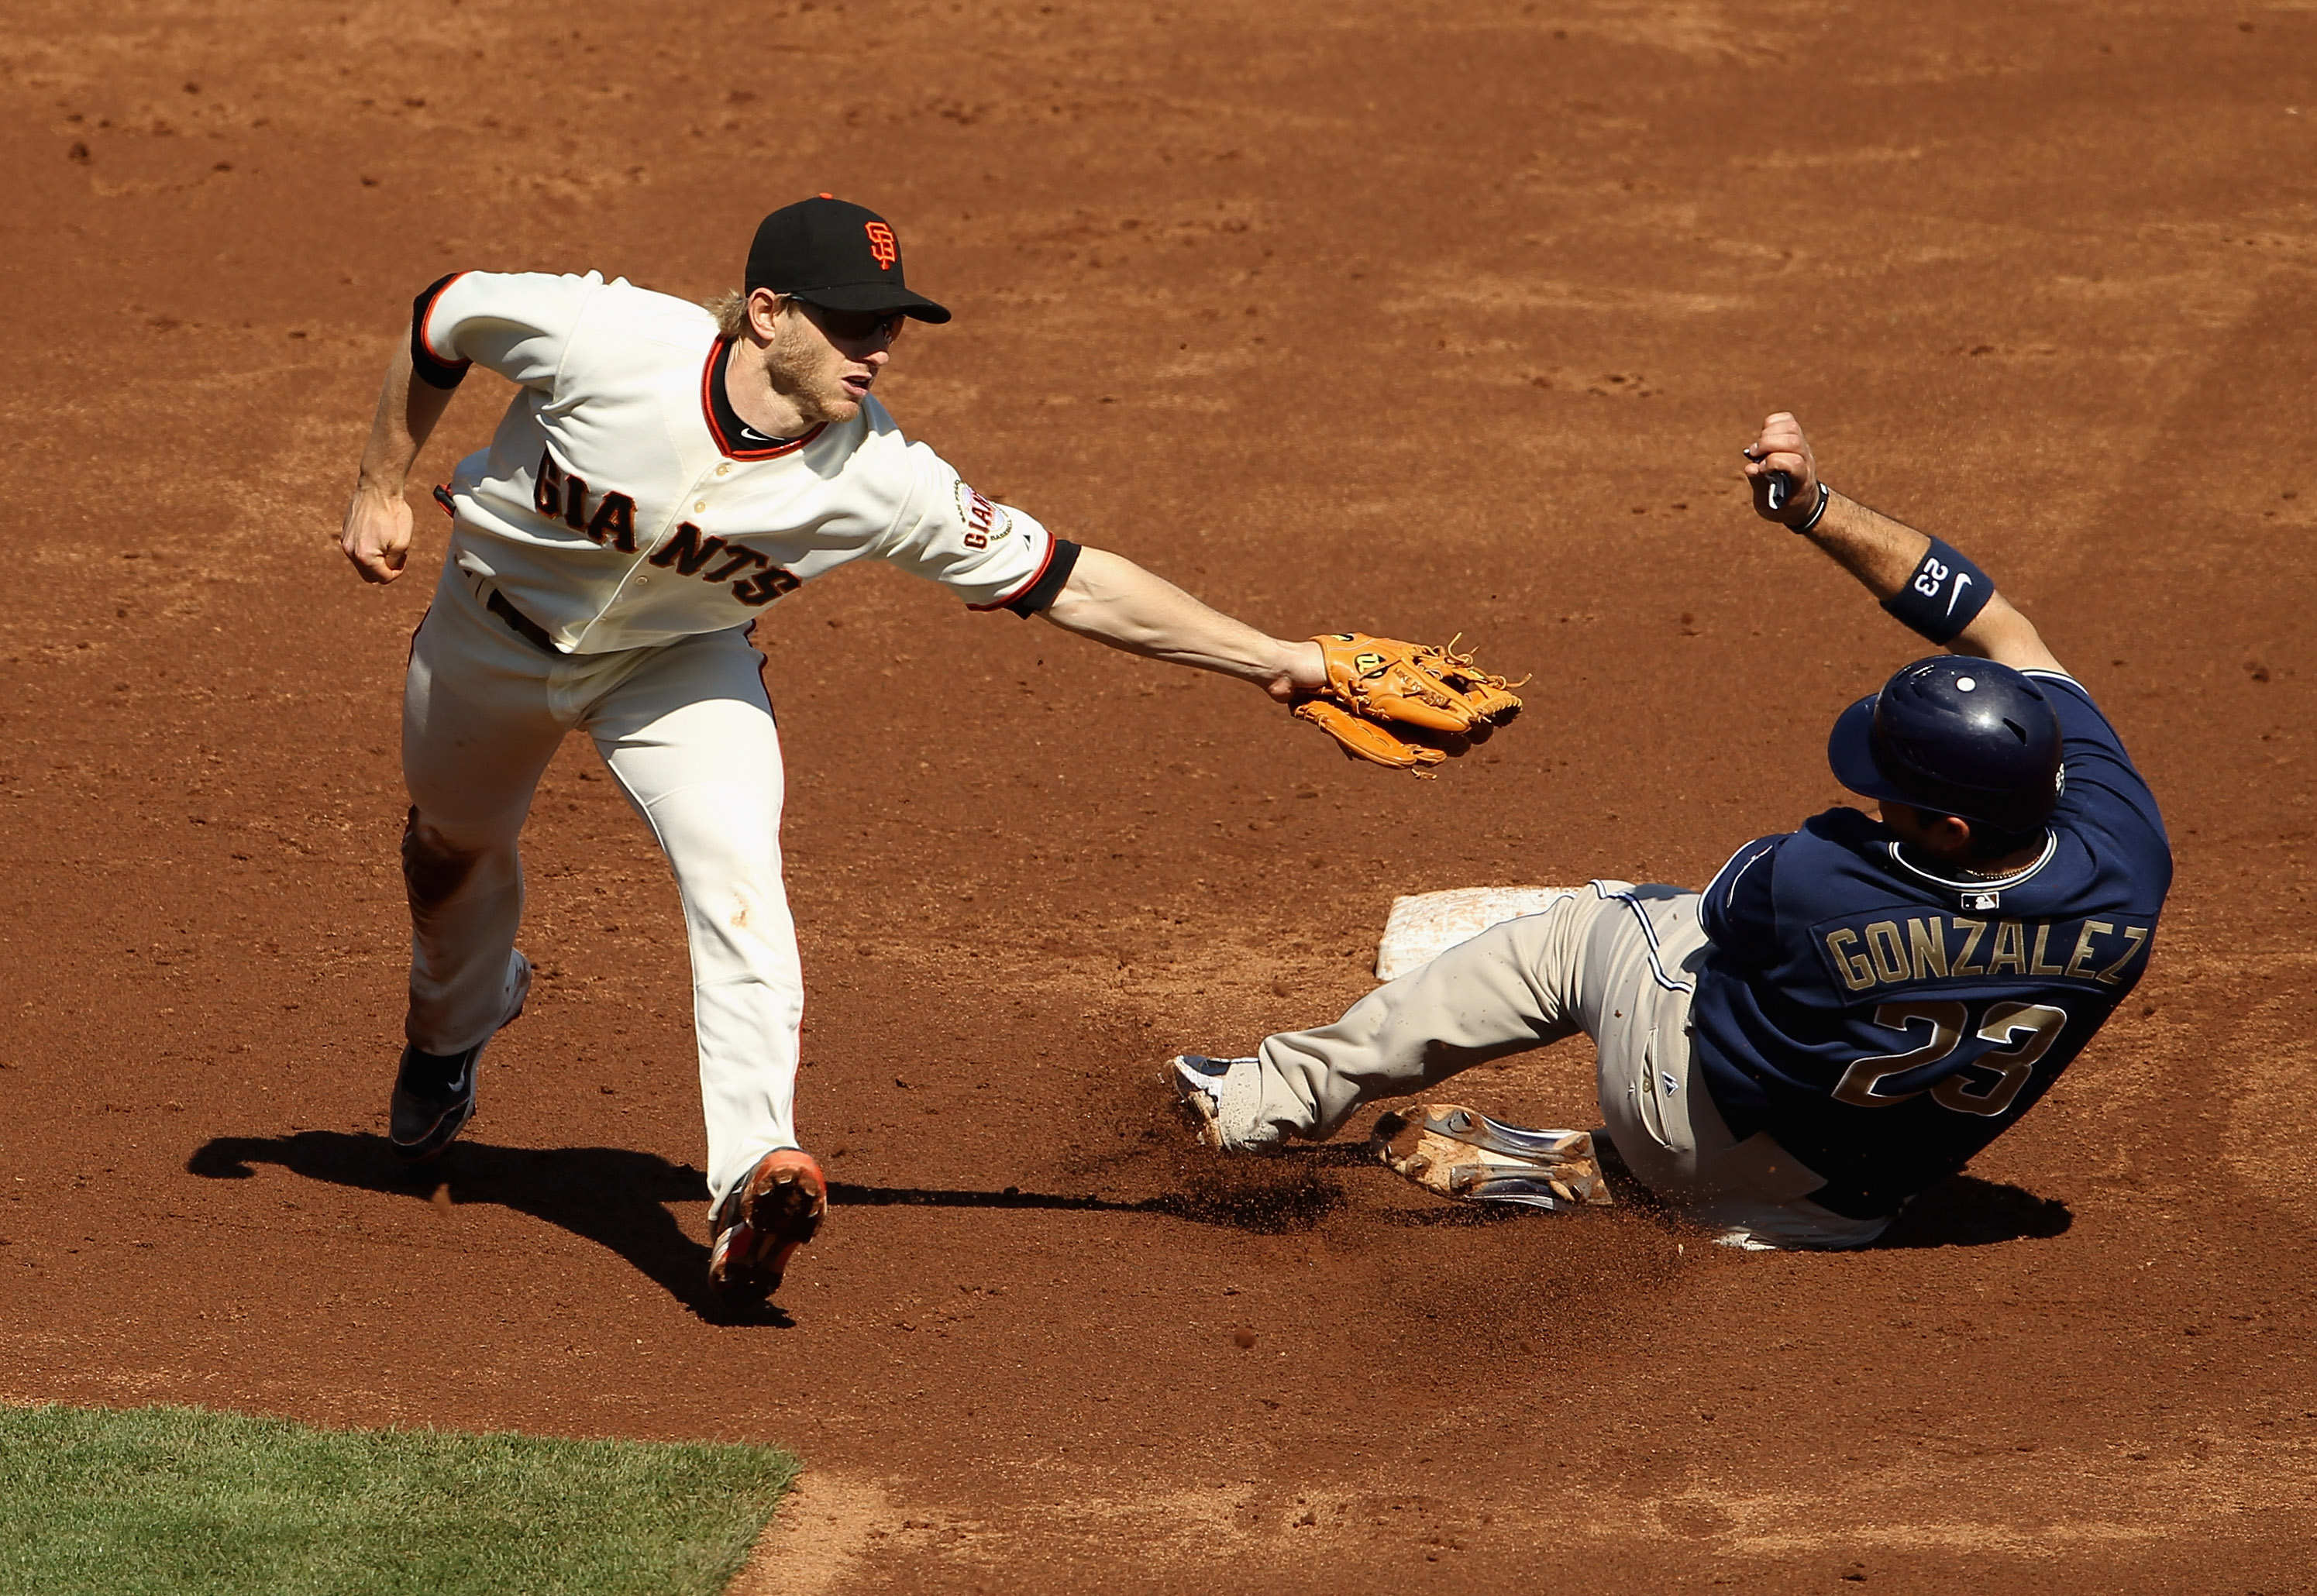 SAN FRANCISCO - OCTOBER 02:  Adrian Gonzalez #23 of the San Diego Padres slides to avoid the tag of Mike Fontenot #14 of the San Francisco Giants that was wide due to a throwing error by Pablo Sandoval at AT&T Park on October 2, 2010 in San Francisco, Cal